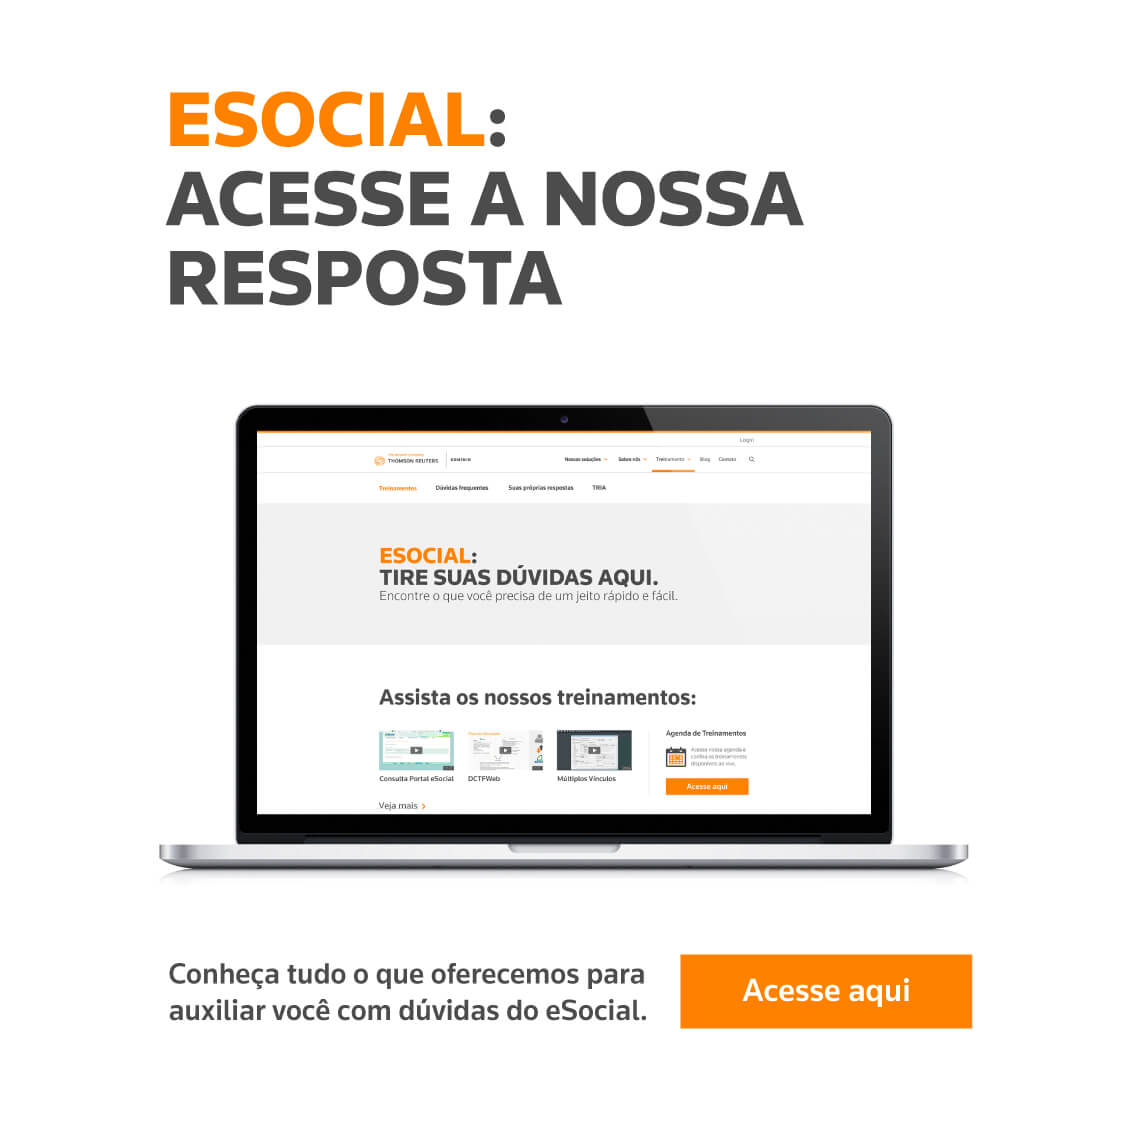 Thomson Reuters - eSocial